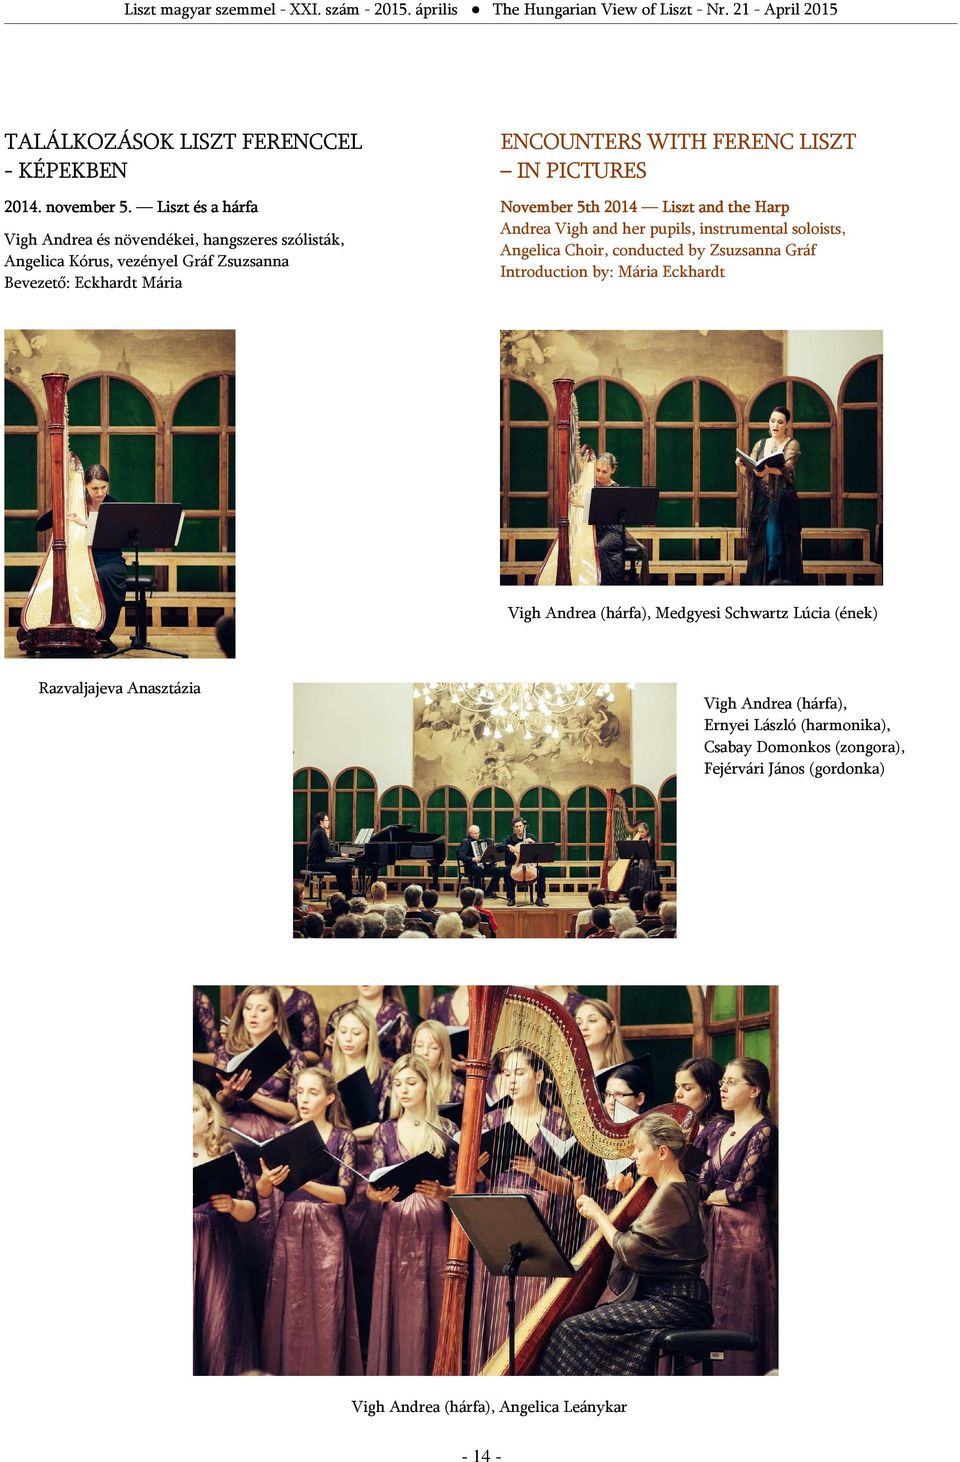 LISZT IN PICTURES November 5th 2014 Liszt and the Harp Andrea Vigh and her pupils, instrumental soloists, Angelica Choir, conducted by Zsuzsanna Gráf